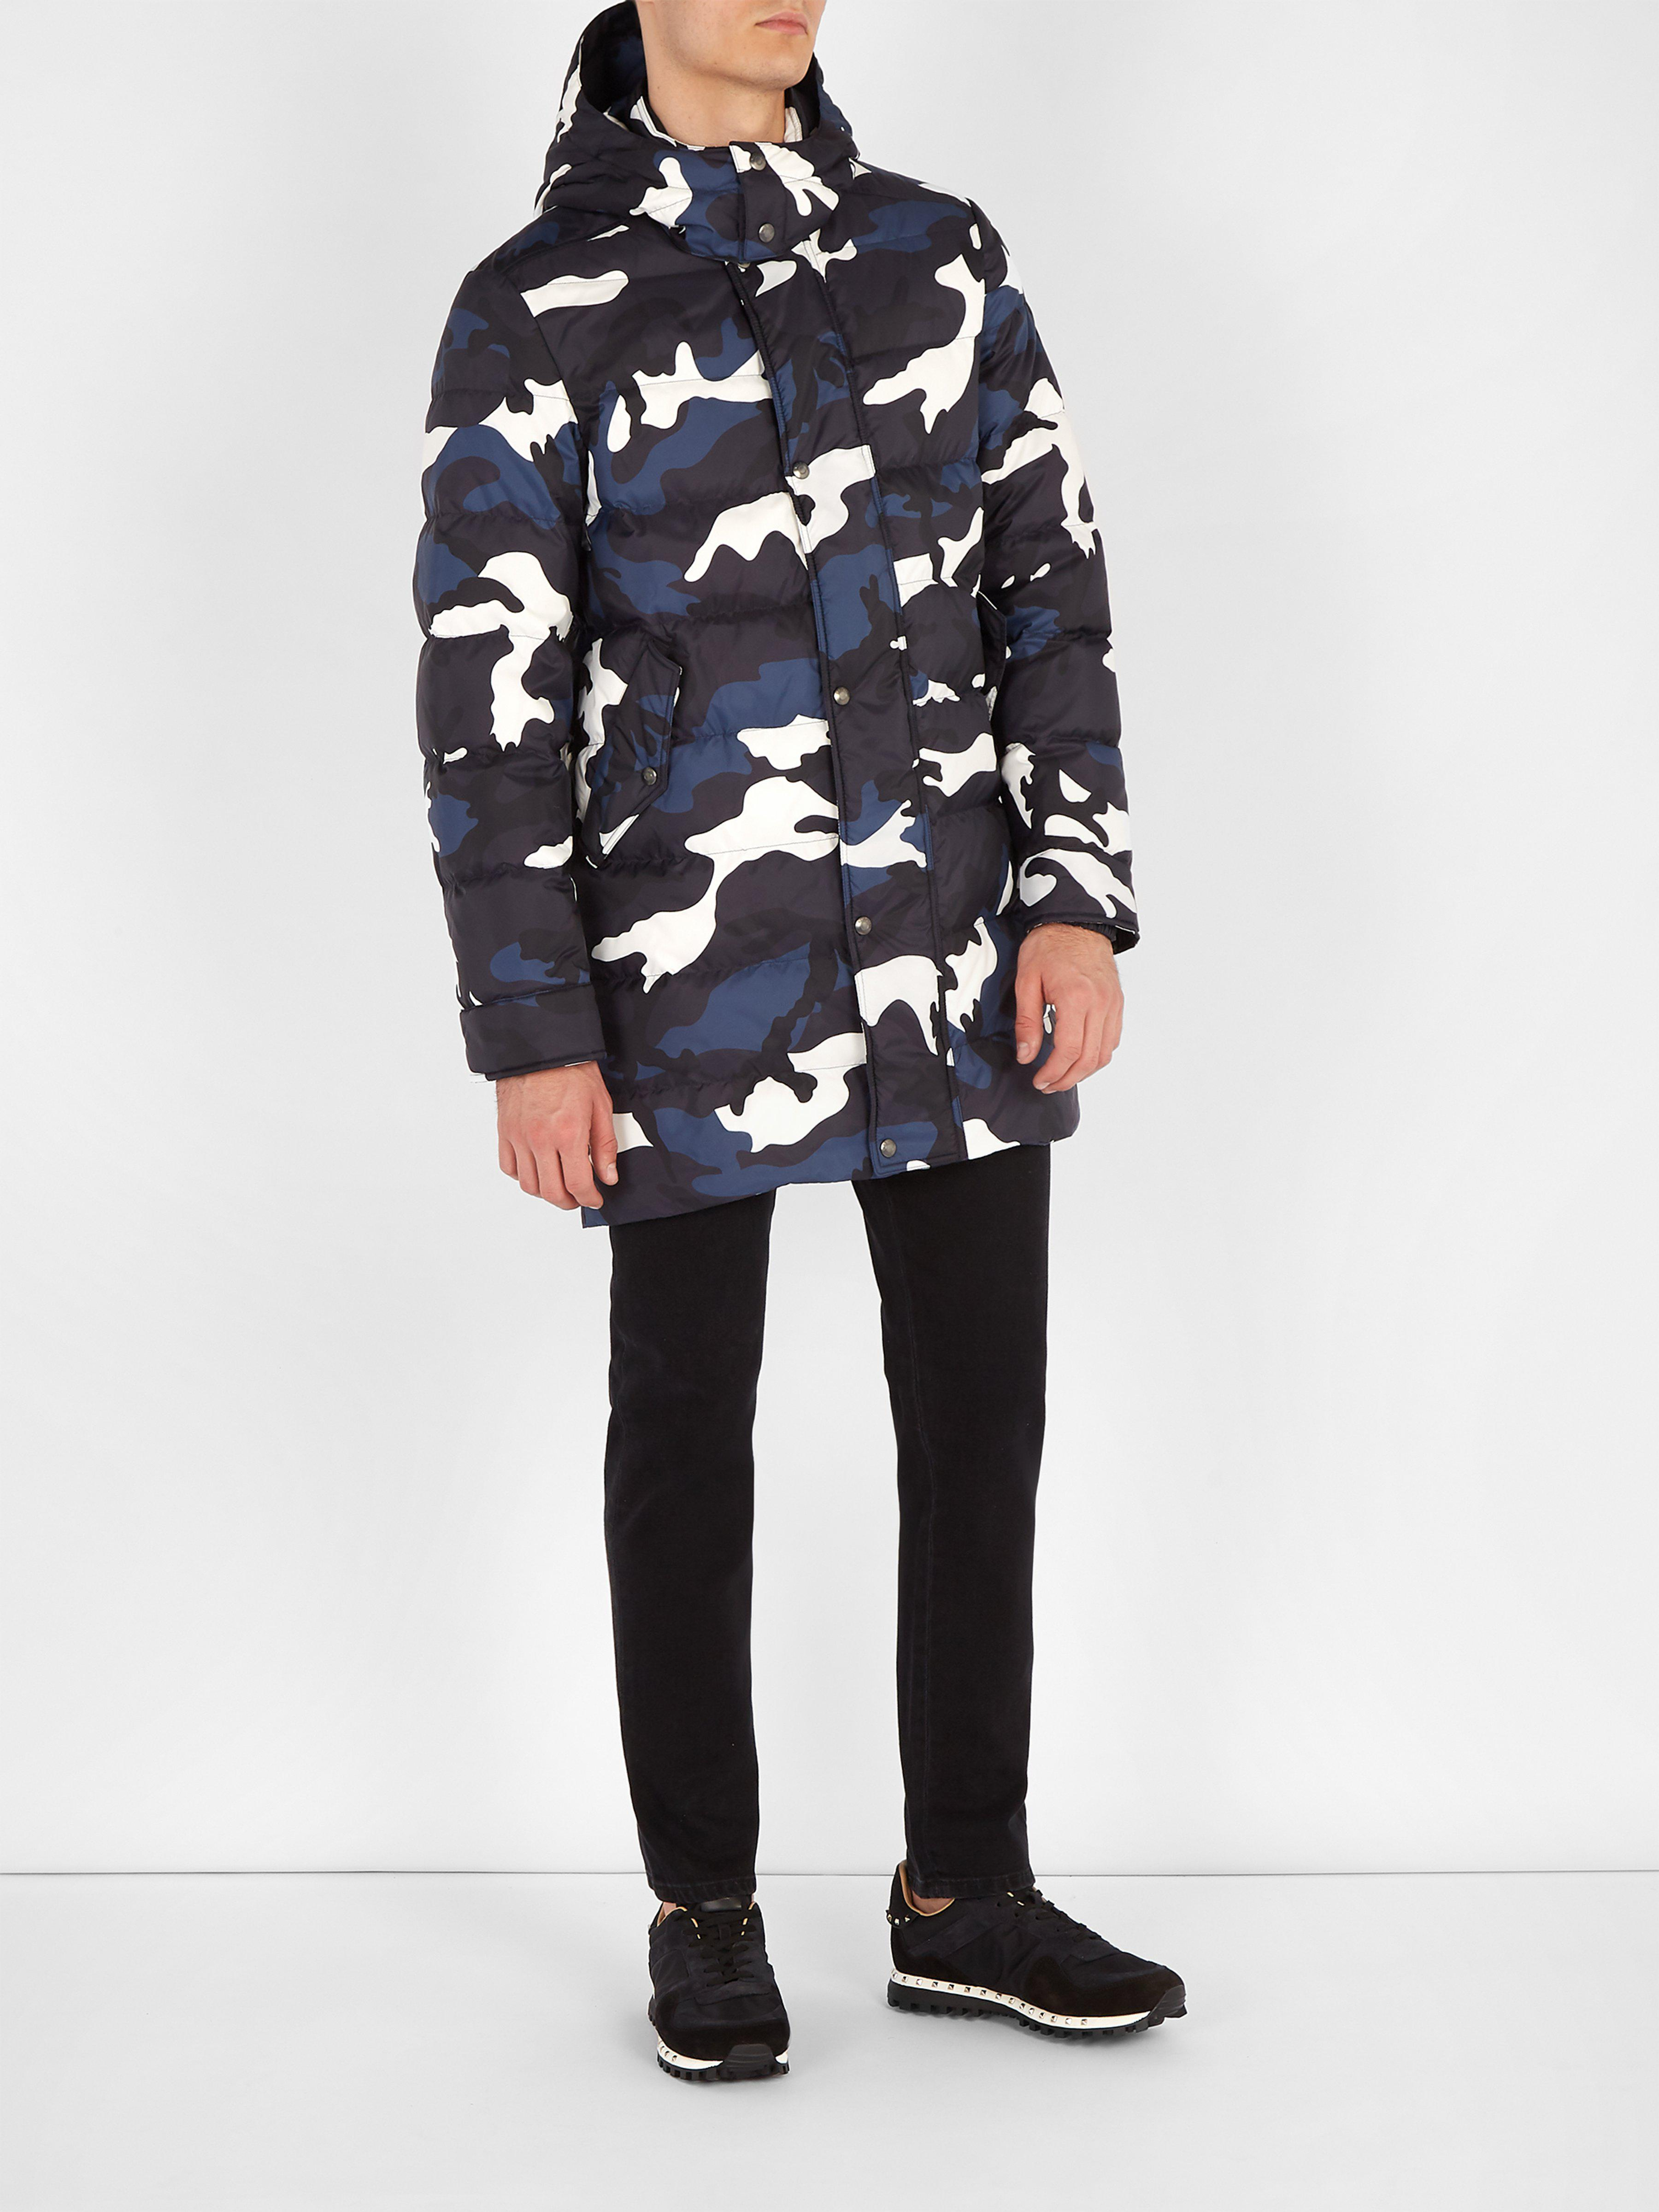 5425b548763d7 Valentino Camouflage Print Quilted Down Jacket in Blue for Men - Lyst